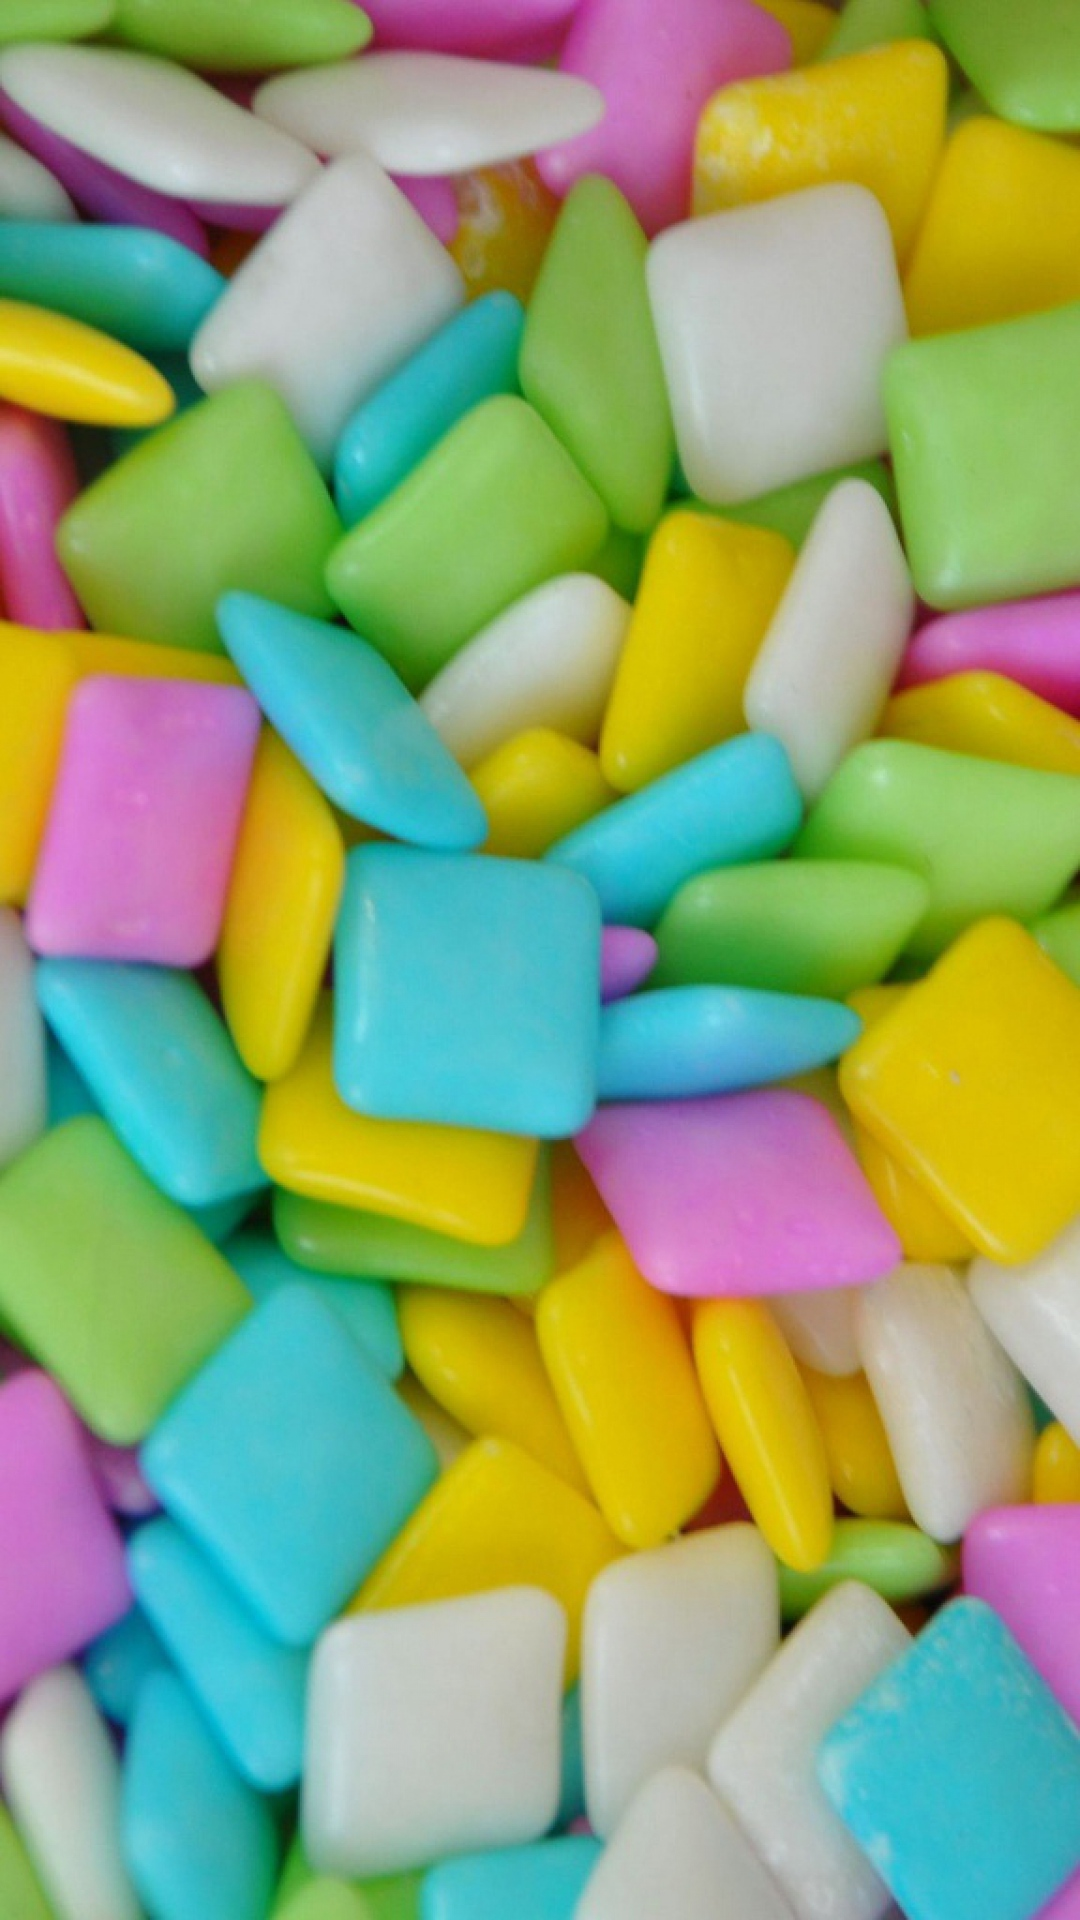 Candy Wallpaper For Iphone